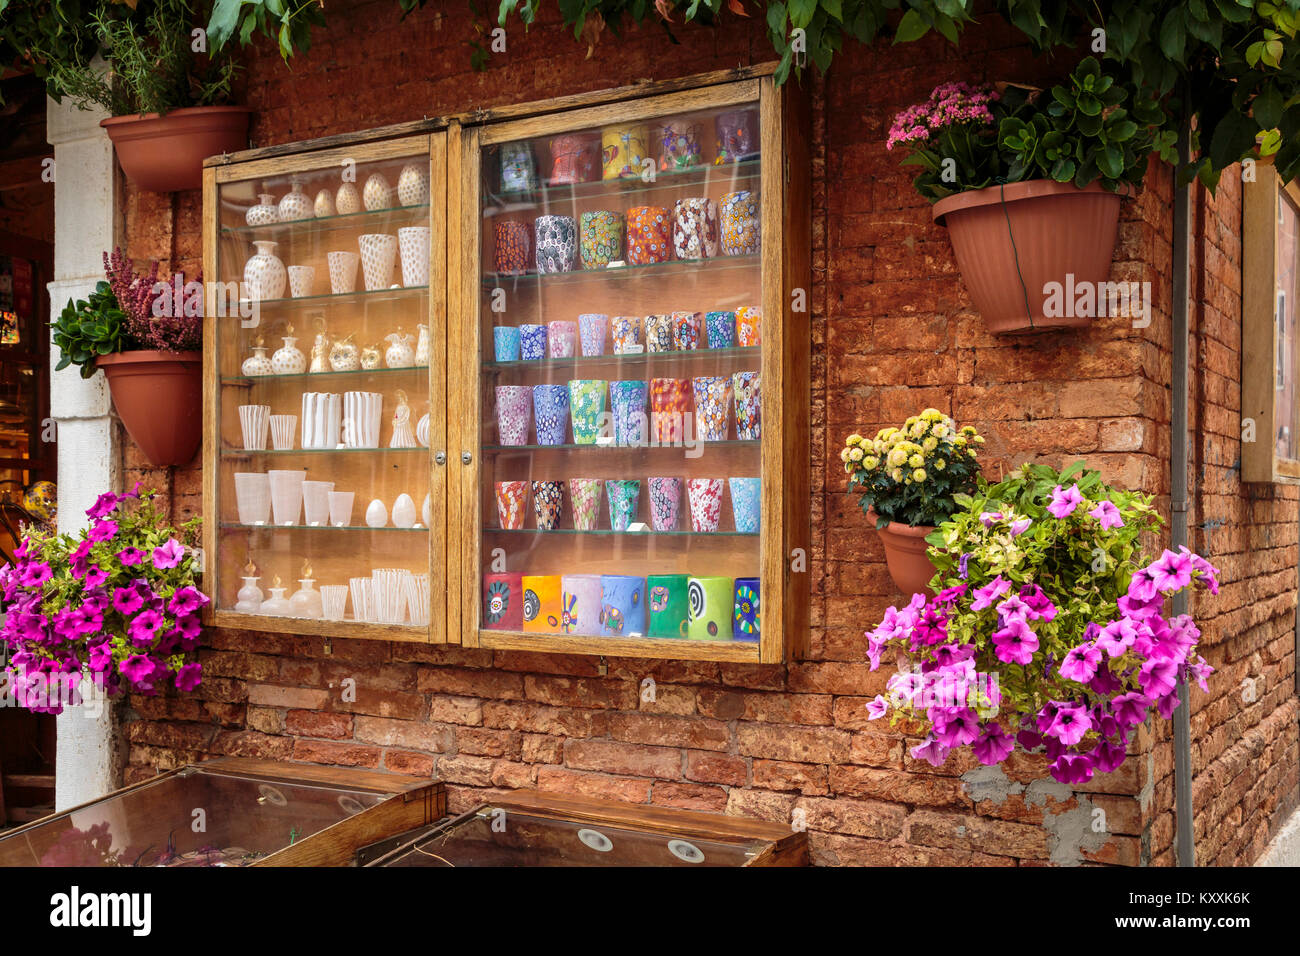 A decorative exterior shop in Veneto, Venice, Italy, Europe. - Stock Image